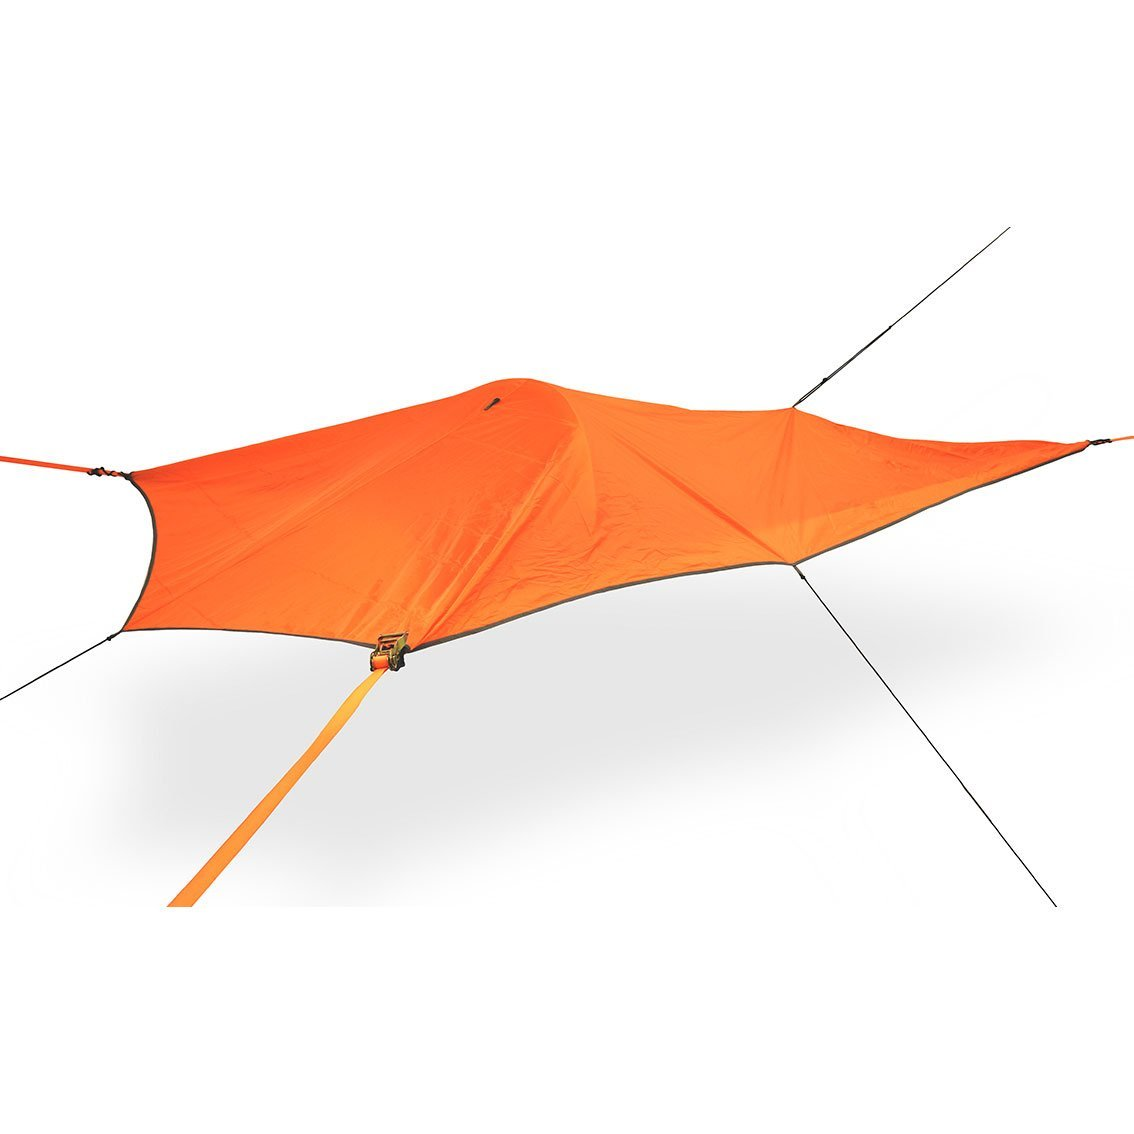 Tentsile | UNA Tree Tent | One Person Lightweight Hammock Tent | Orange